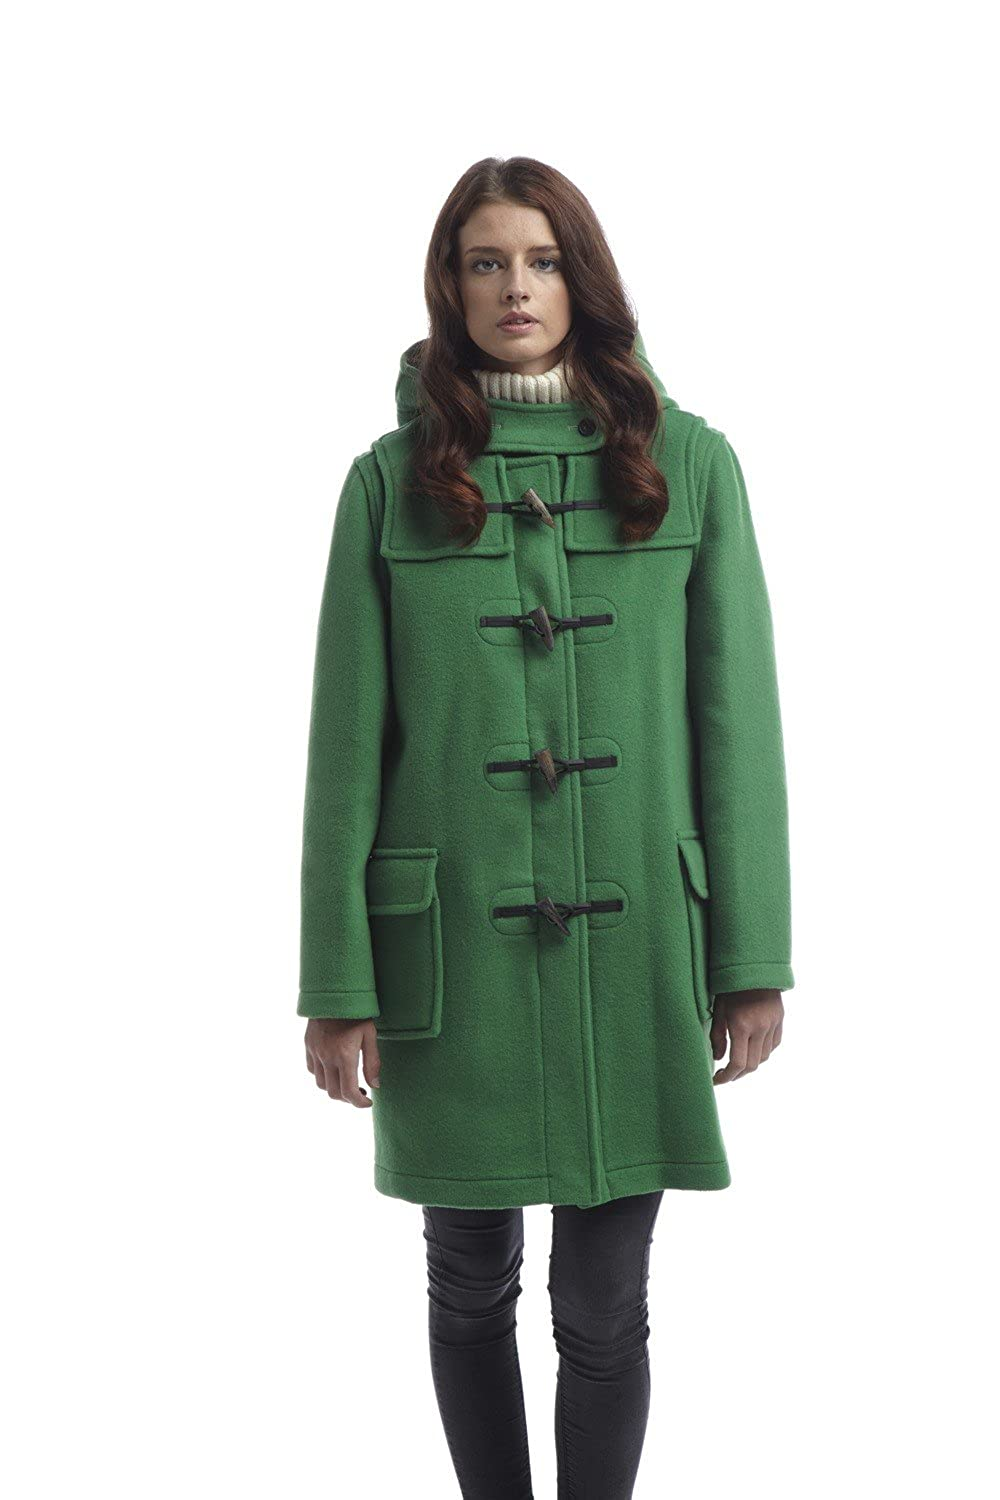 Amazon.com: Womens Classic Duffle coats -- Green: Clothing